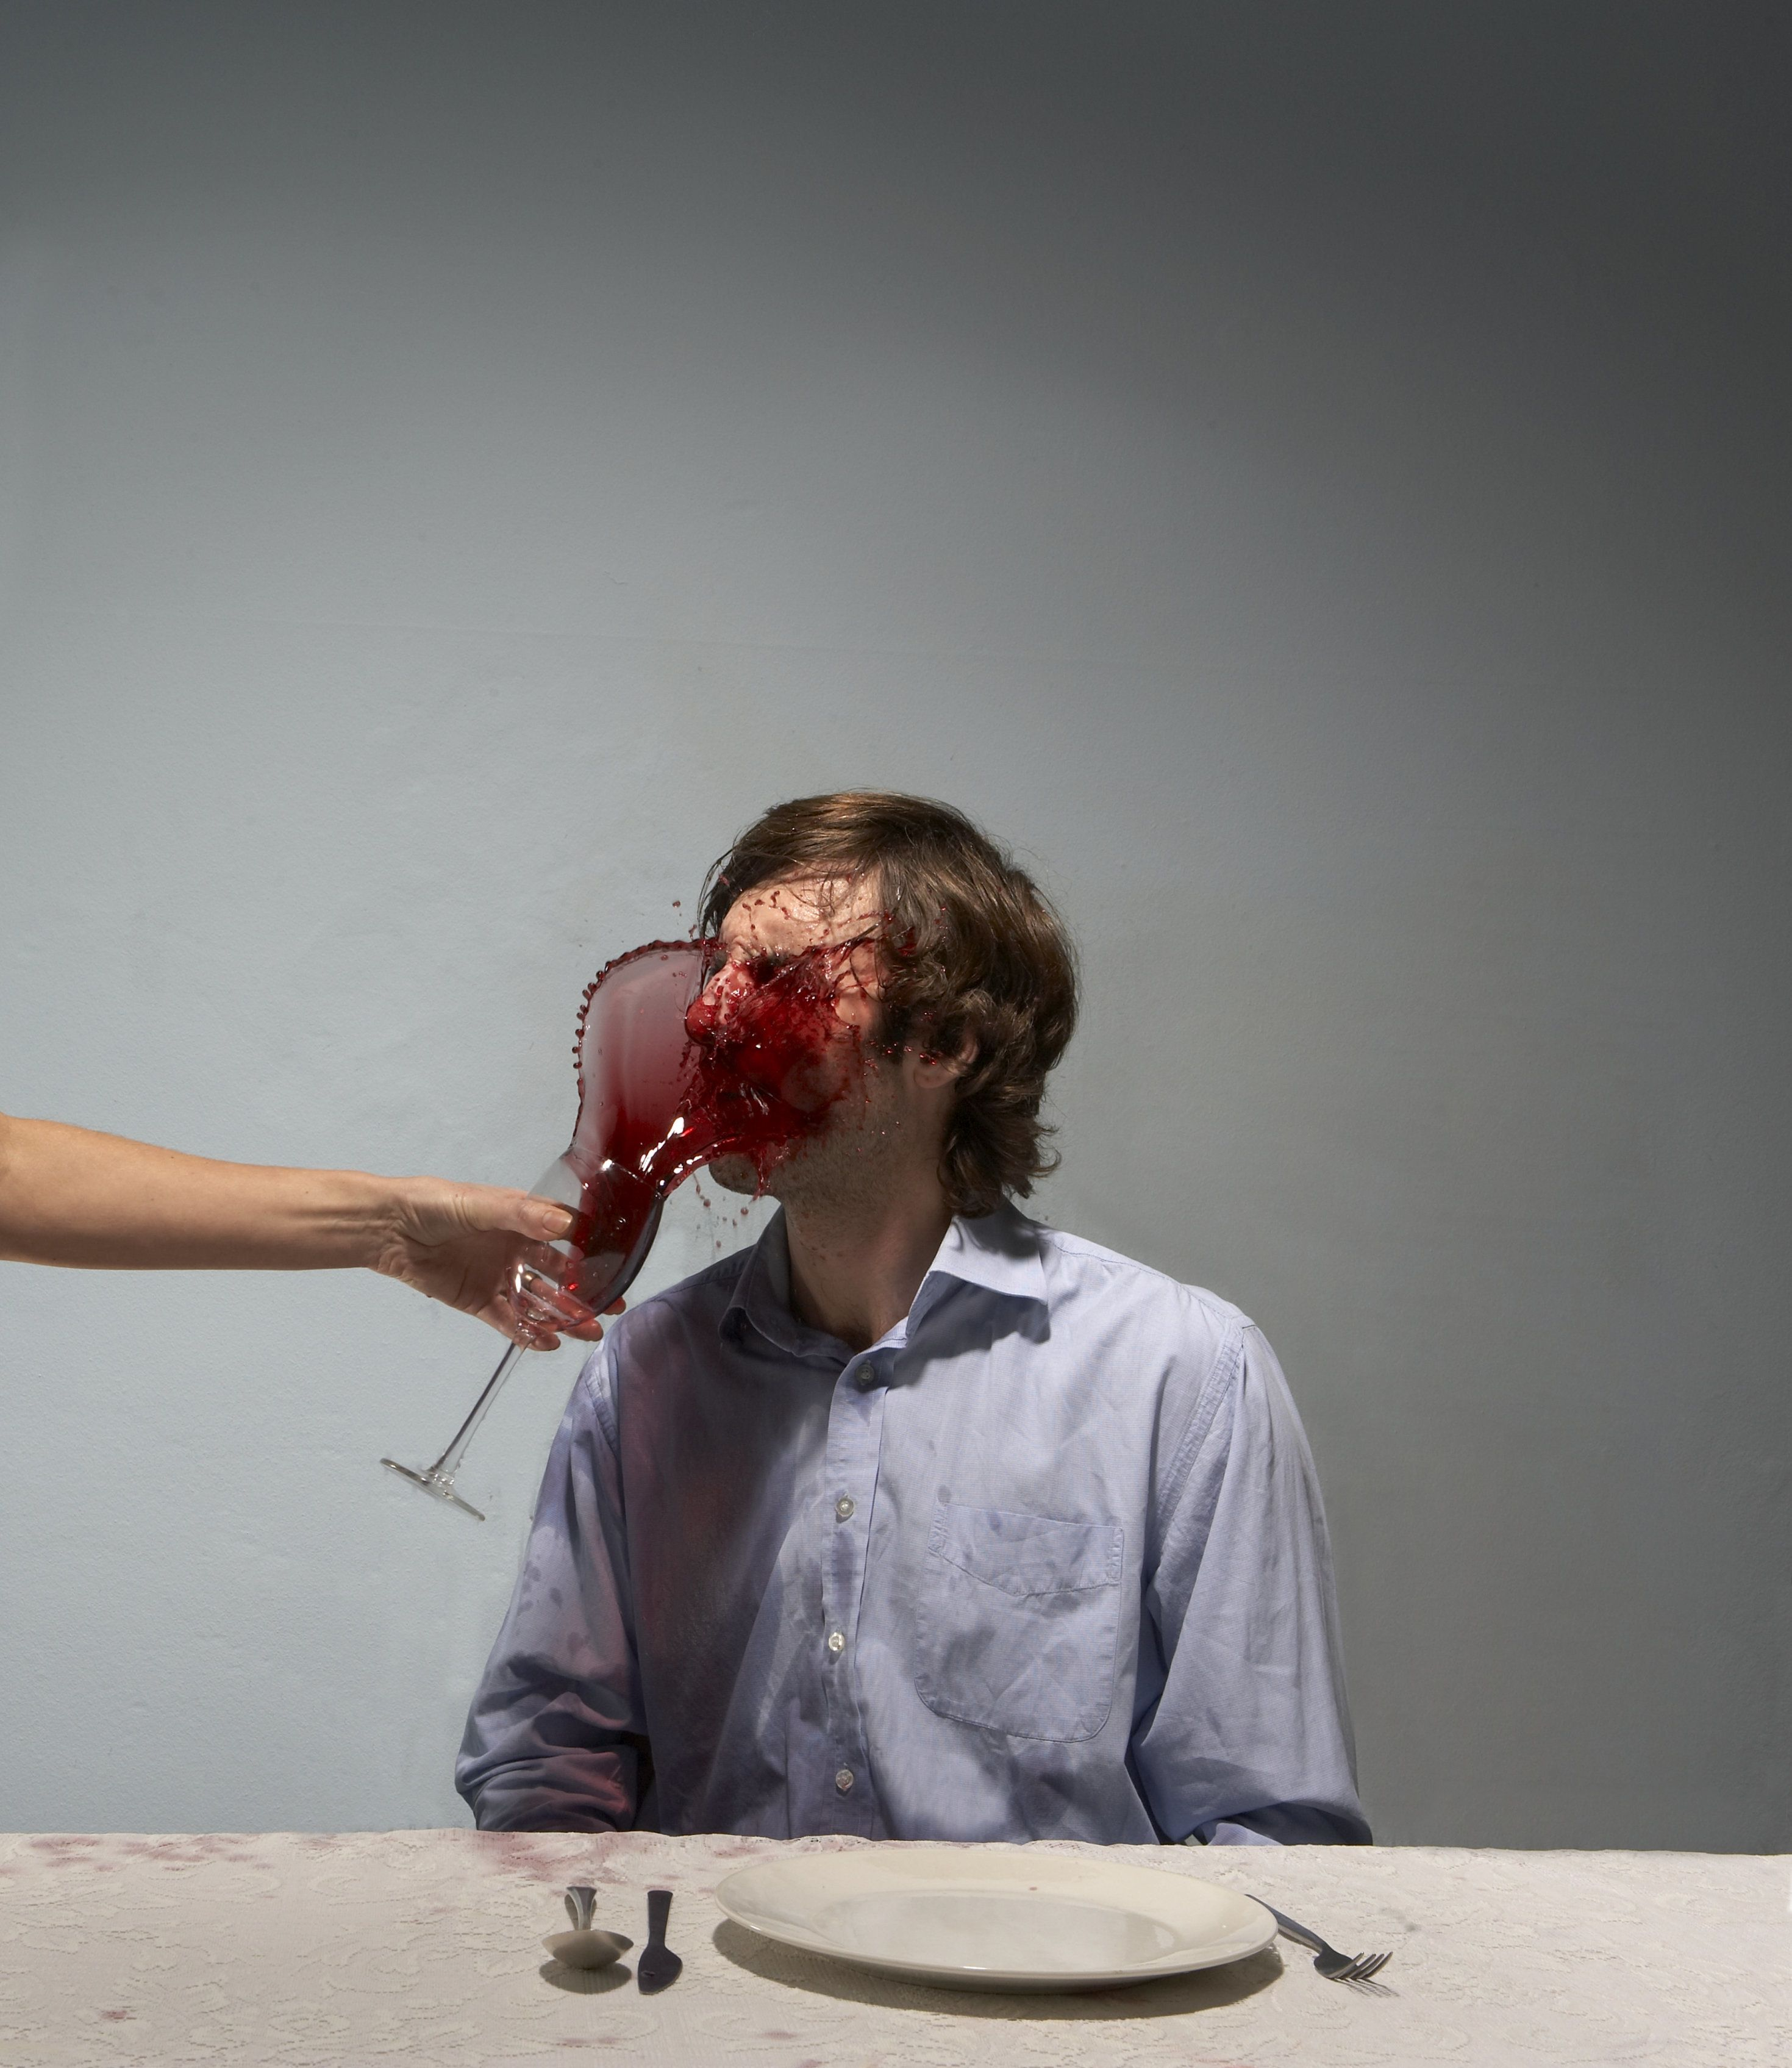 Woman throwing red wine in man's face